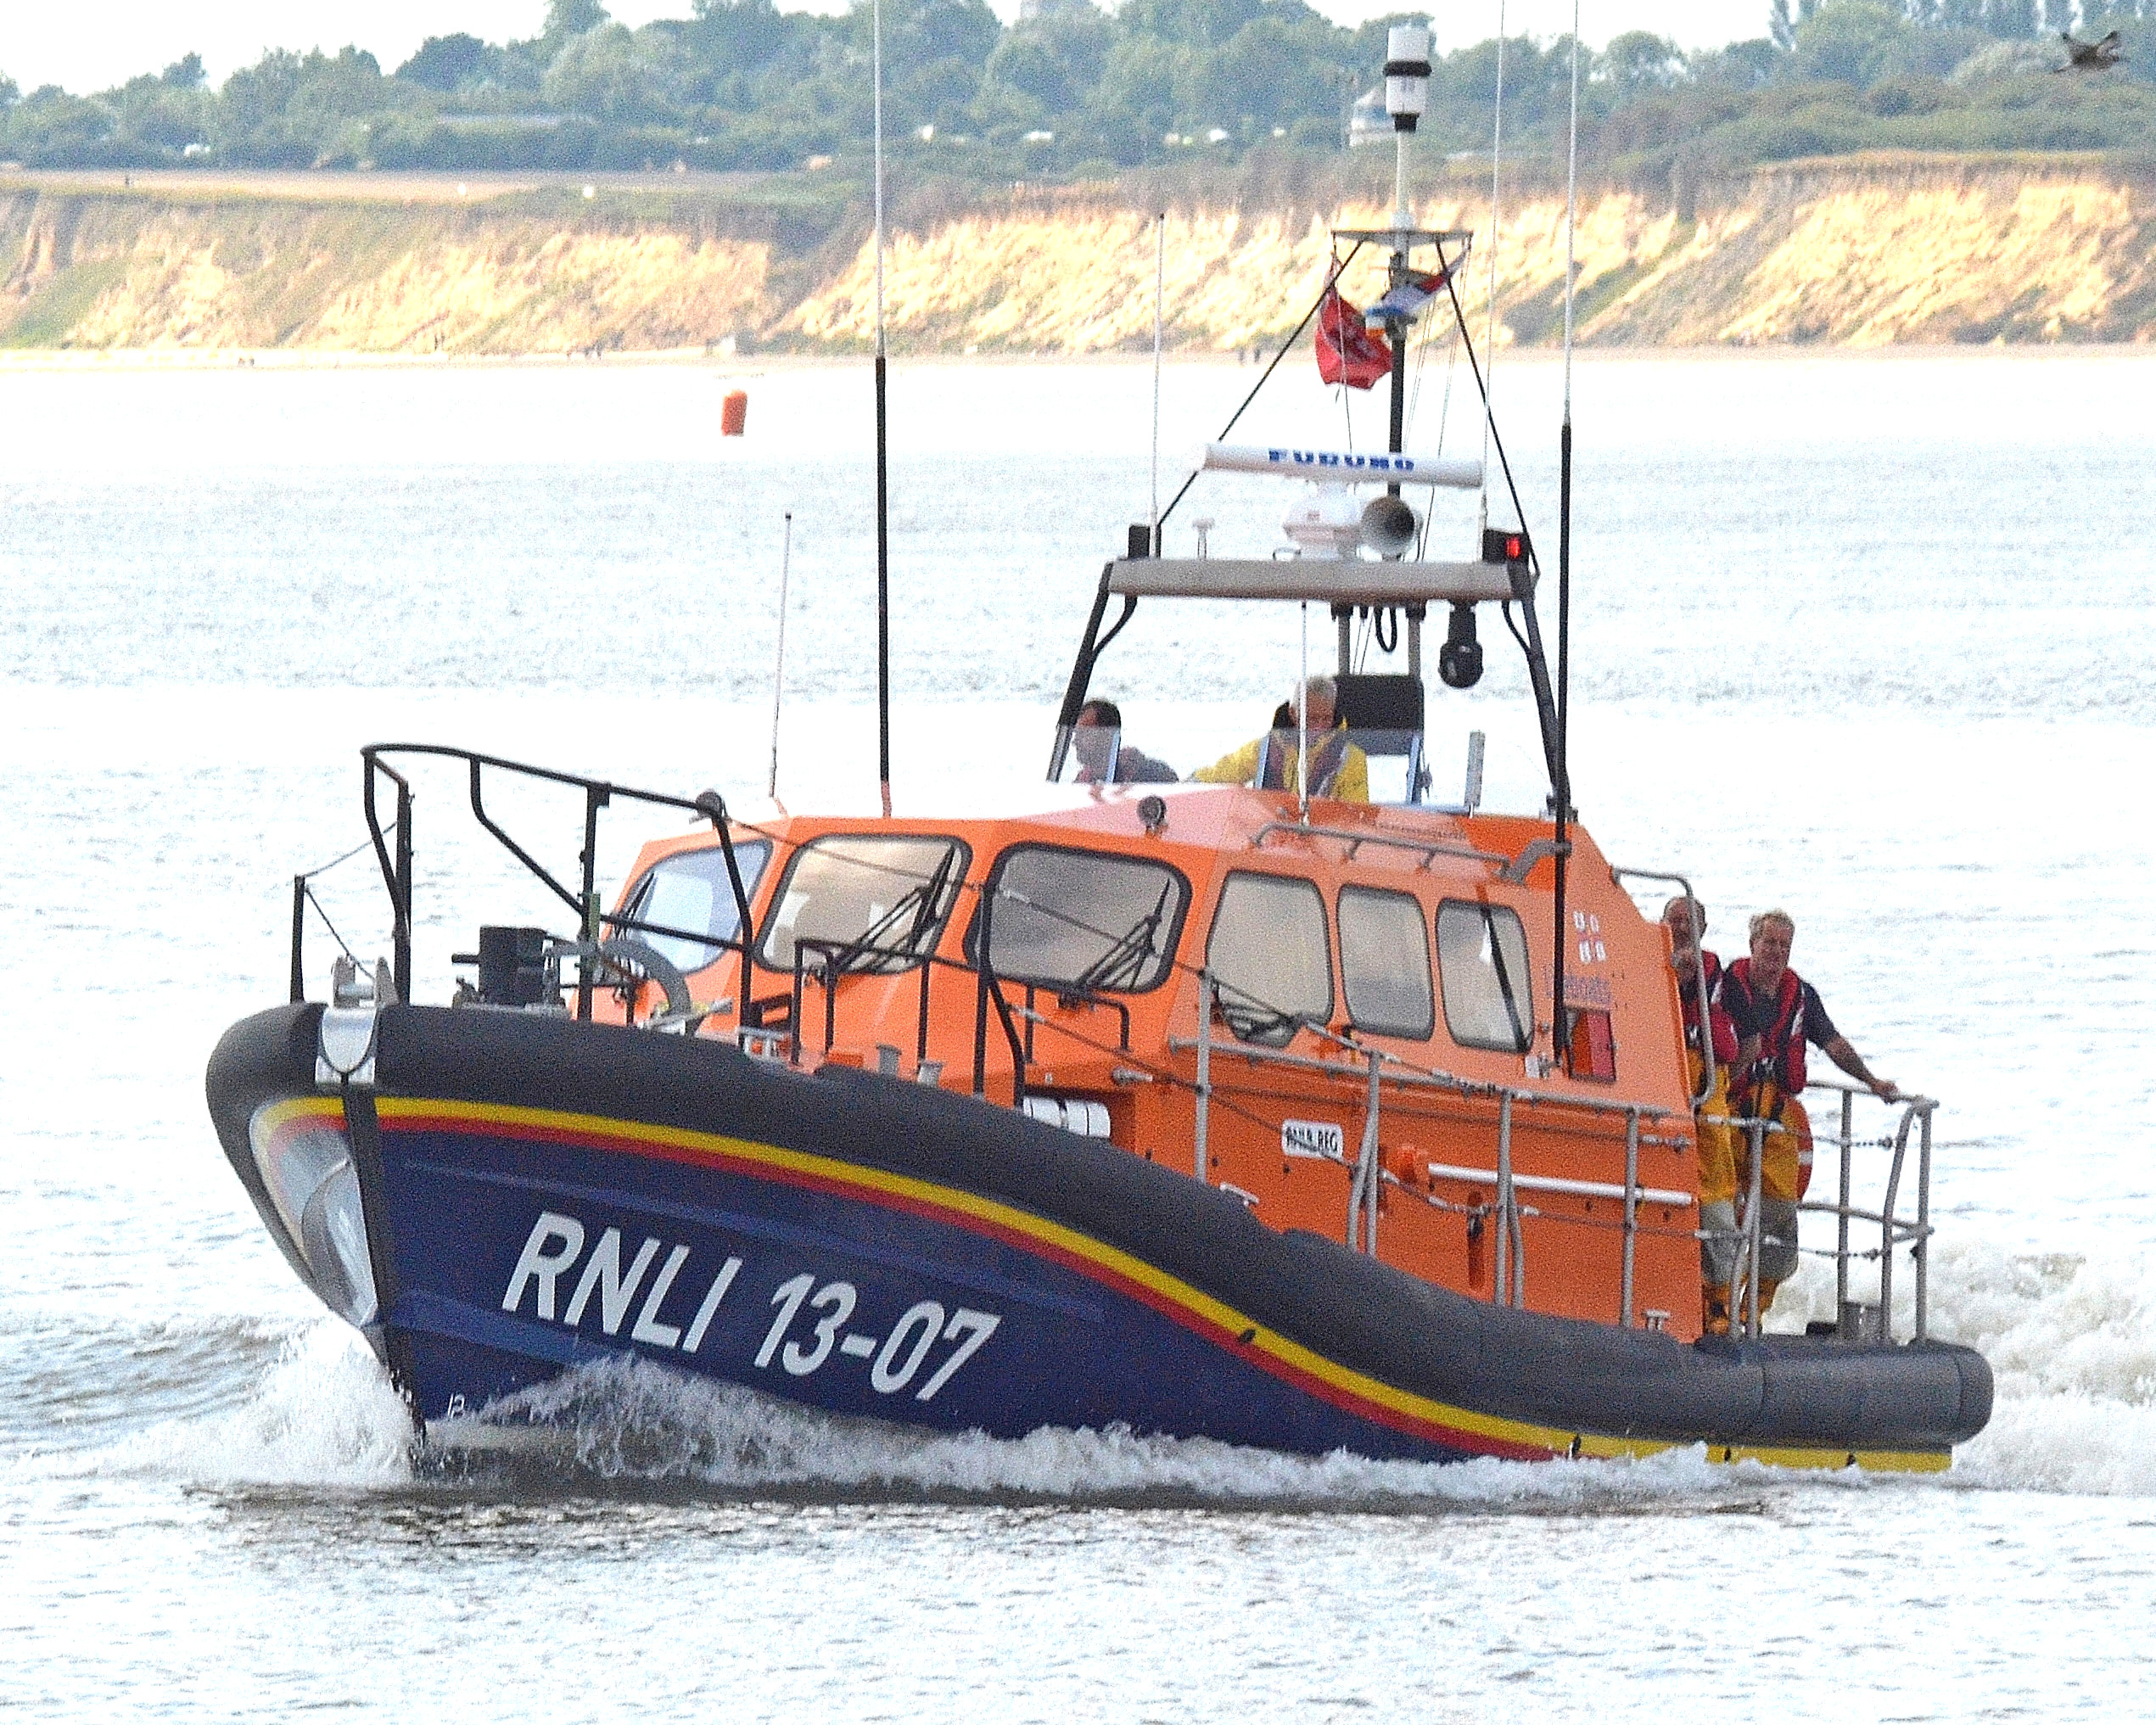 Library Image of Lowestoft Relief Lifeboat 'Reg'